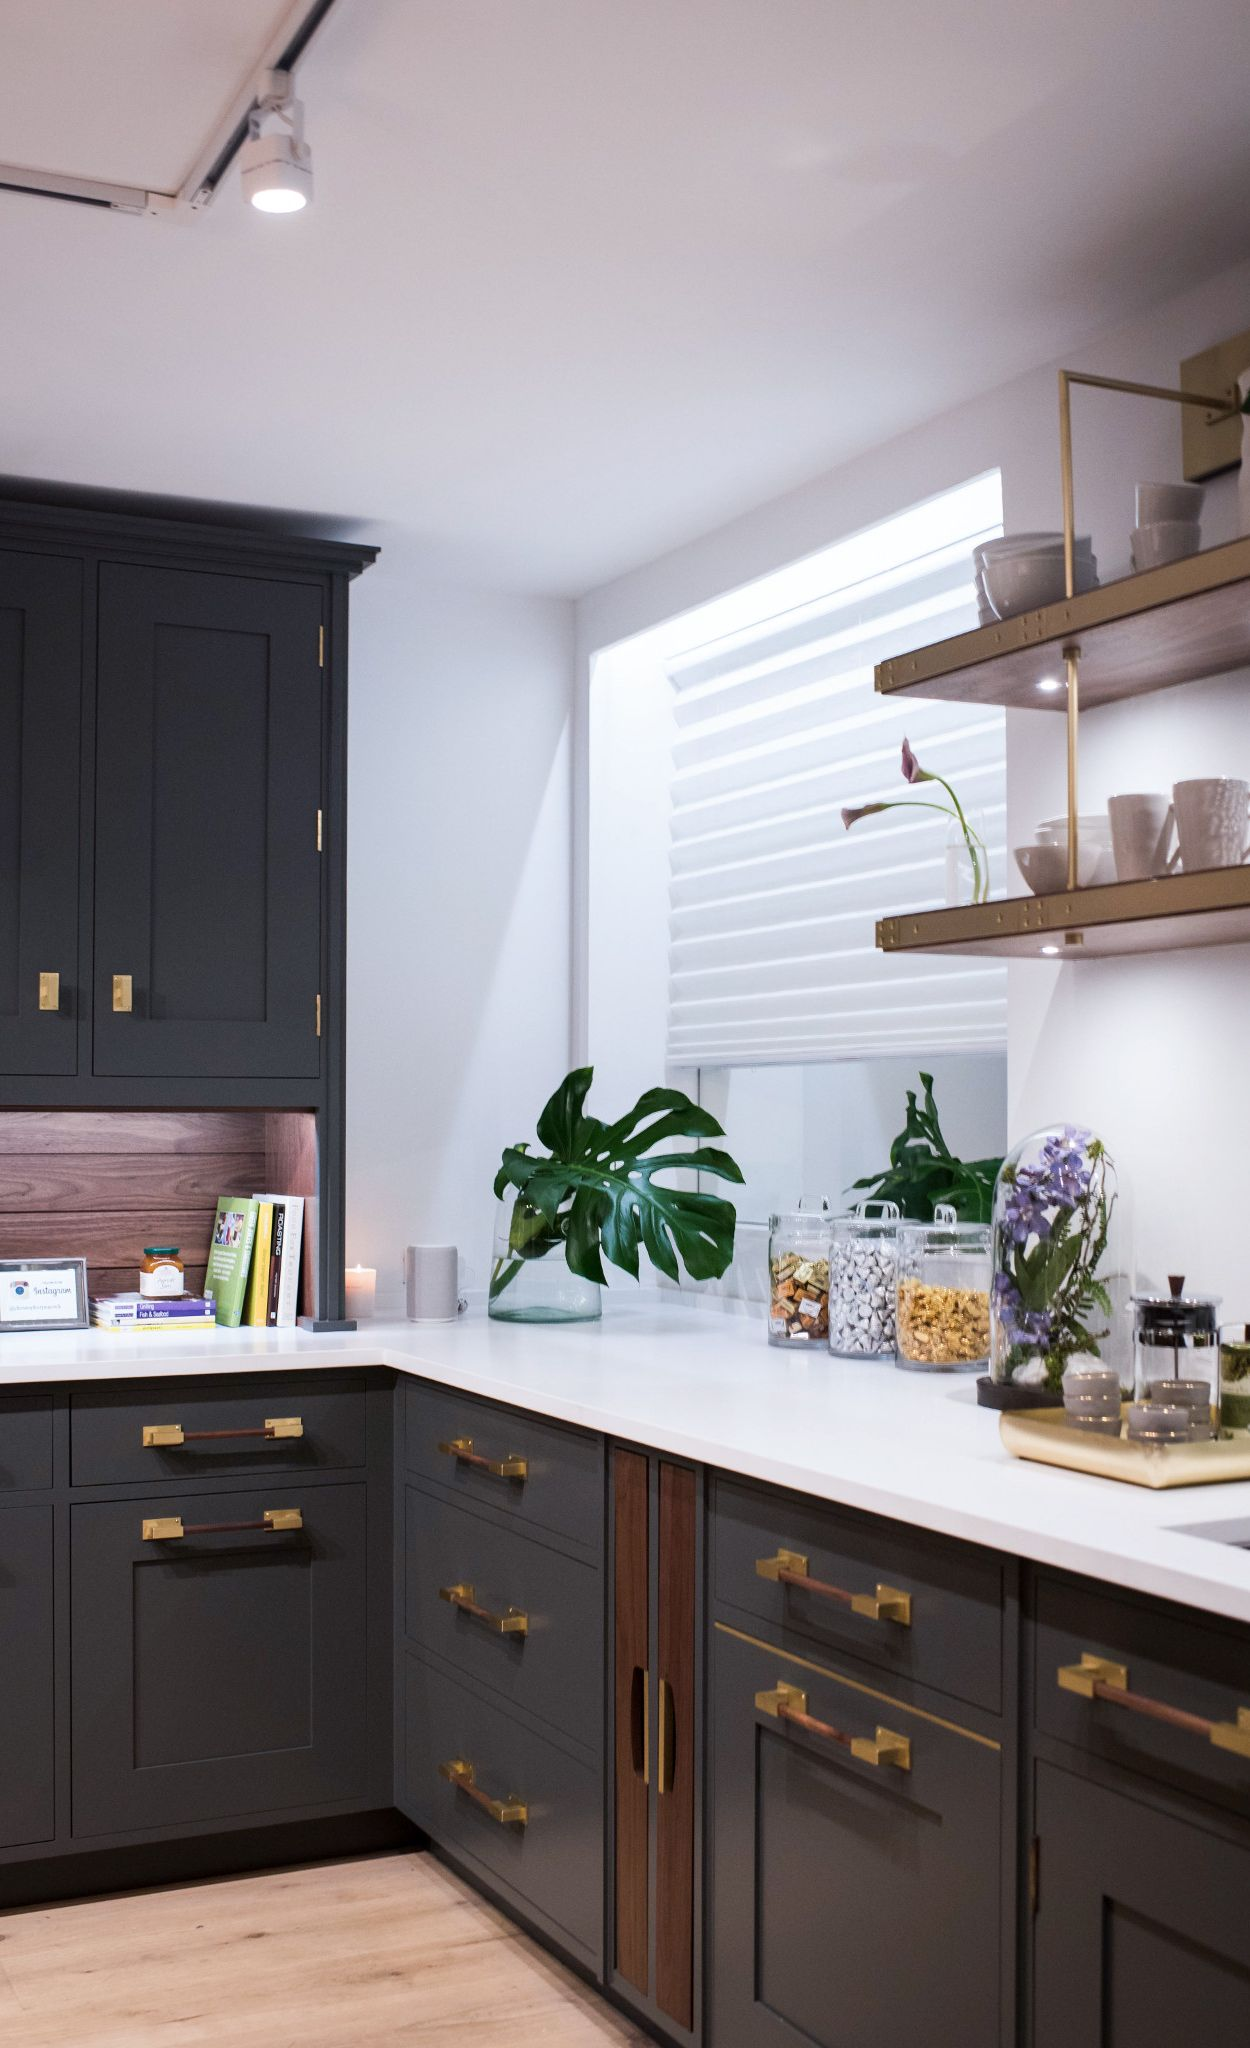 Olive green cabinetry paired with Cambria White Cliff Matte countertops, brass hardware, and open shelving.